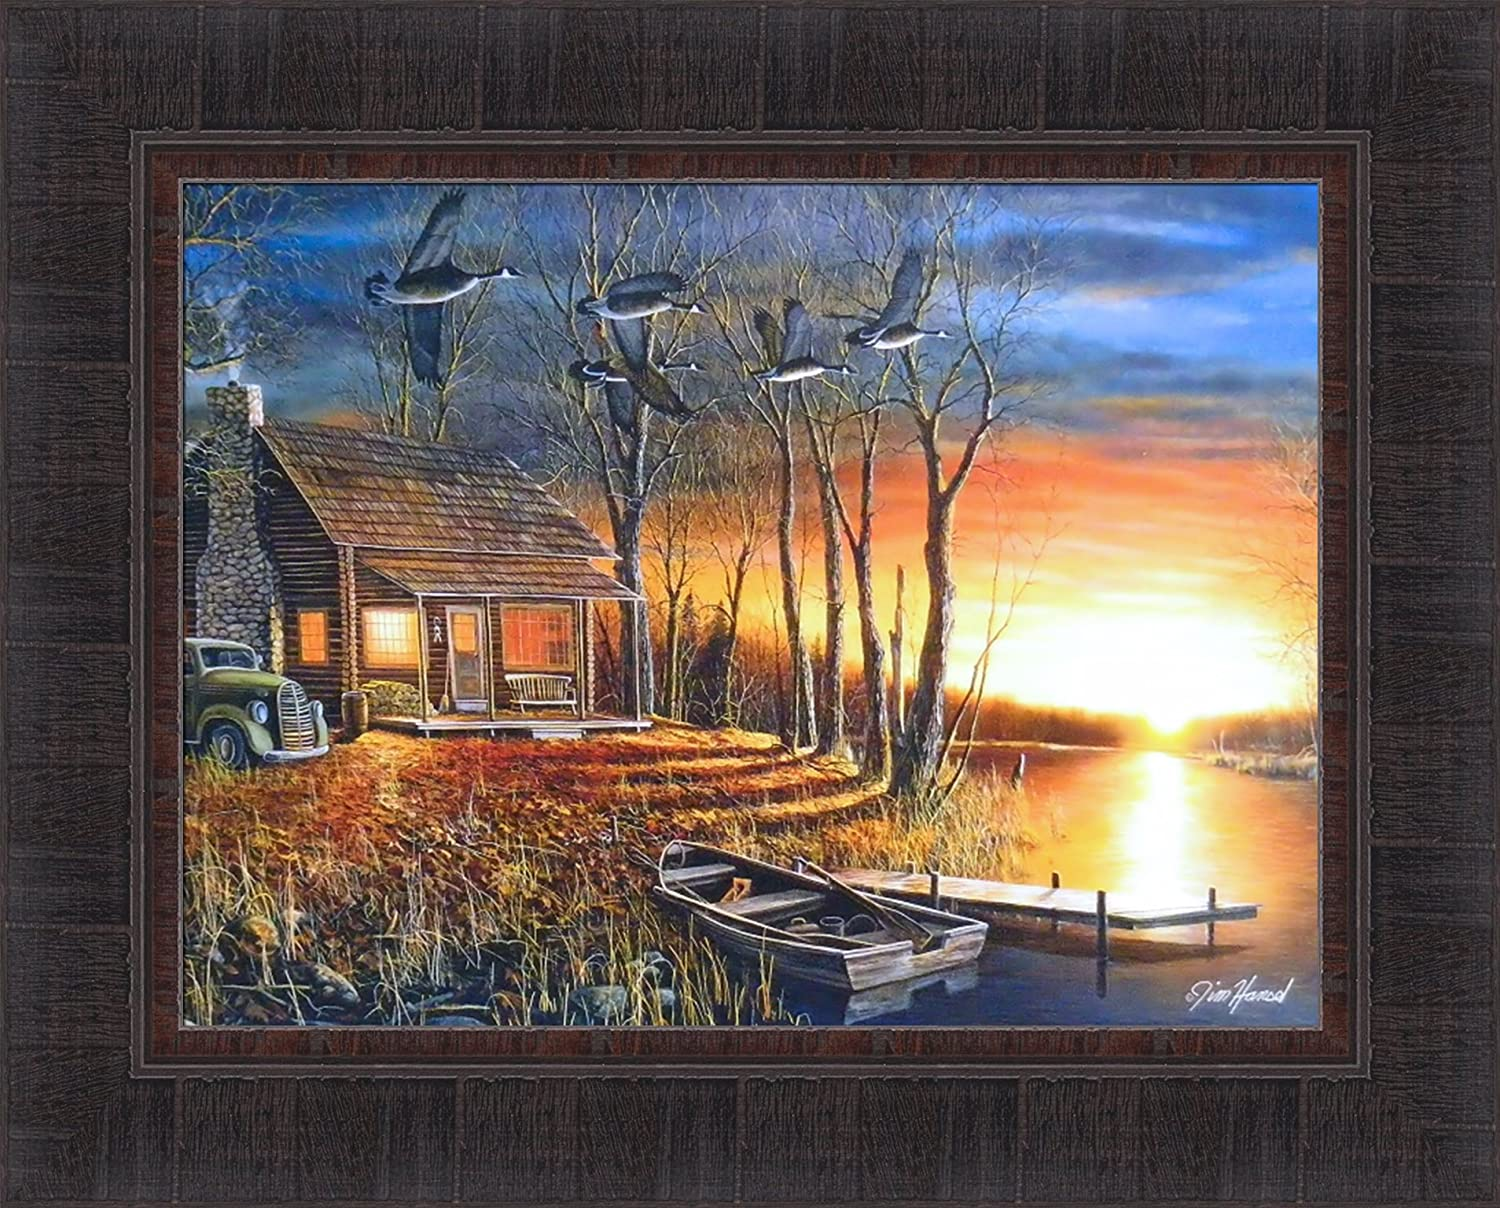 Sundown By Jim Hansel 17x21 Cabin Boat Lake Geese Framed Art Print Wall Décor Picture Posters Prints